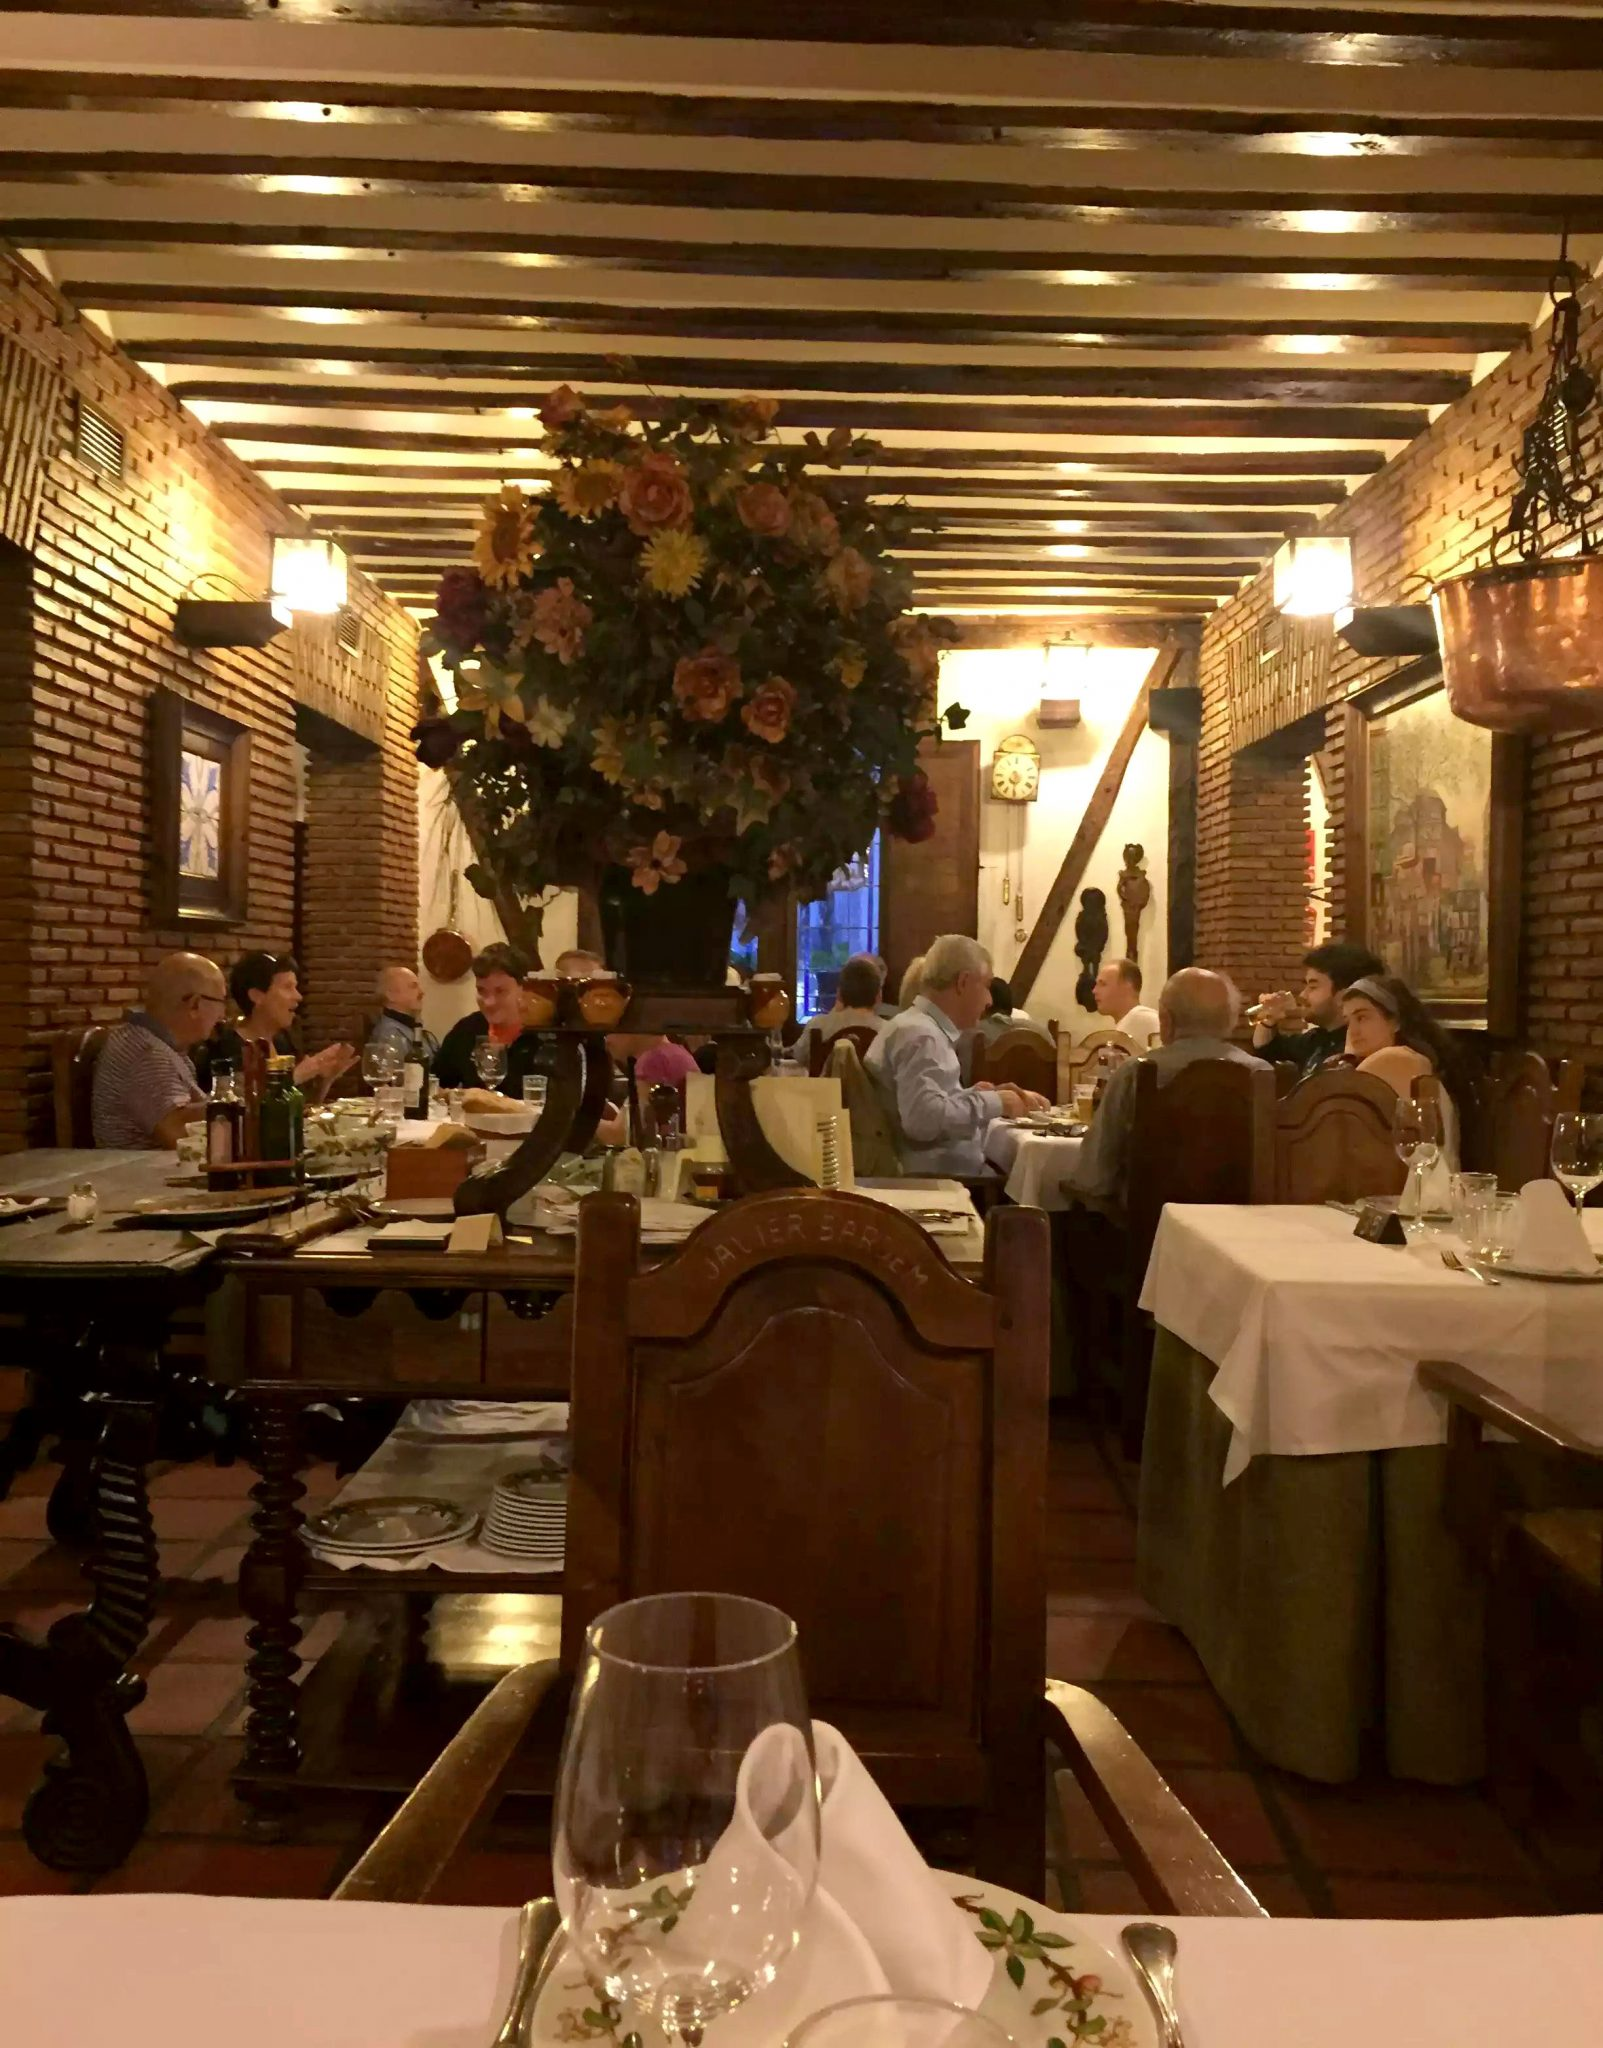 The Most Authentic, Traditional & Best Restaurants in Madrid - Emma Eats & Explores